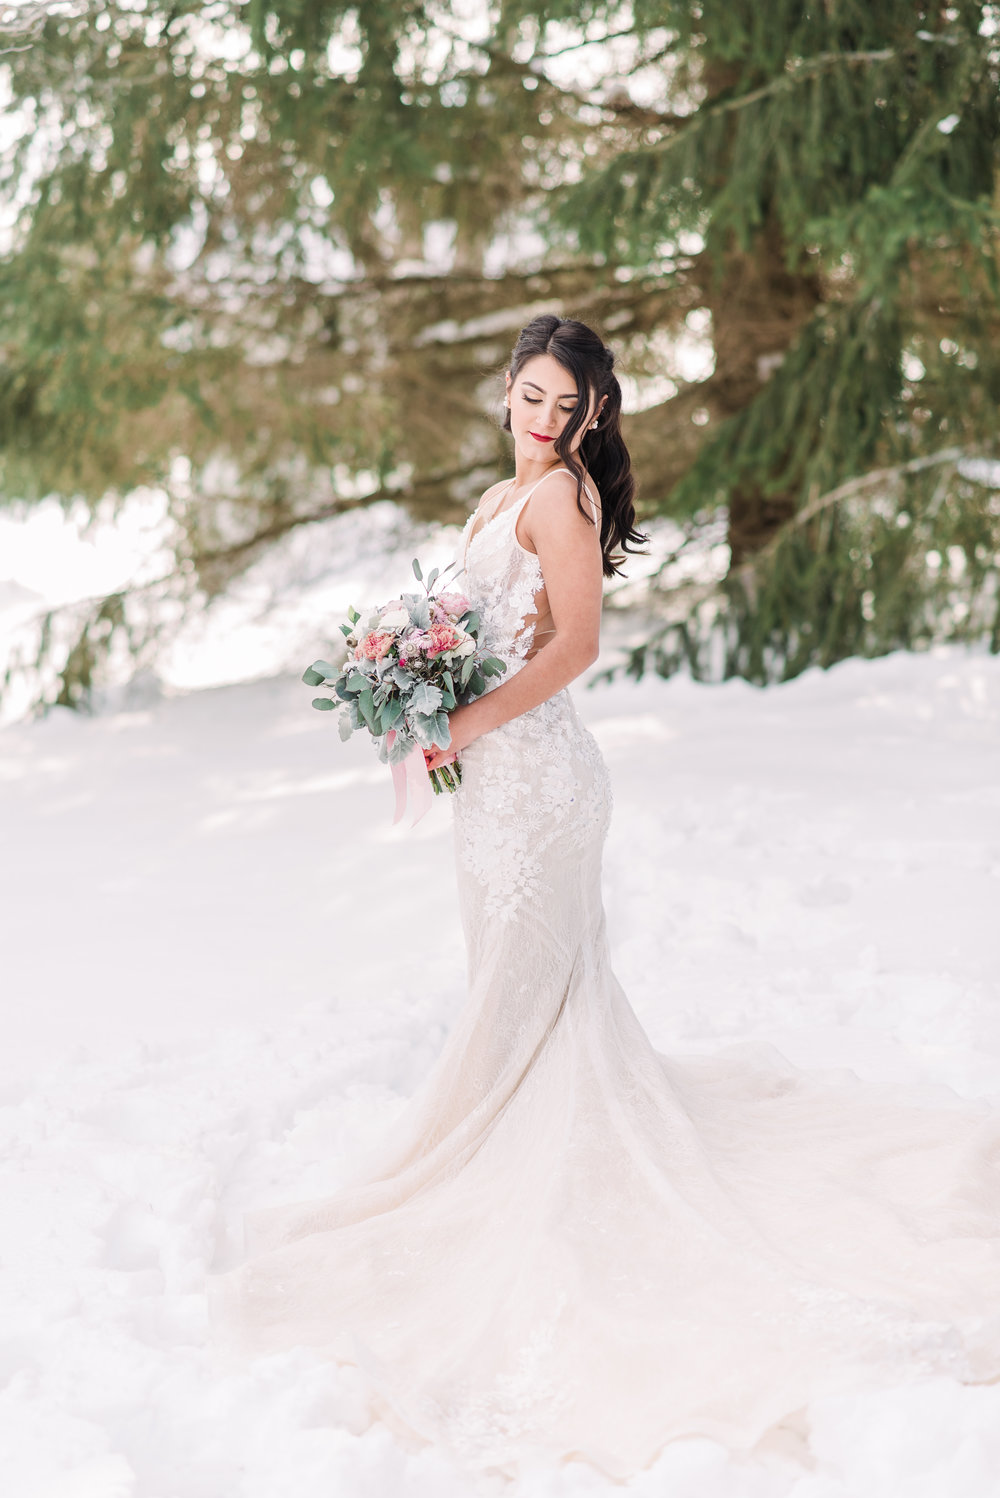 beautiful court train wedding dress in the snow